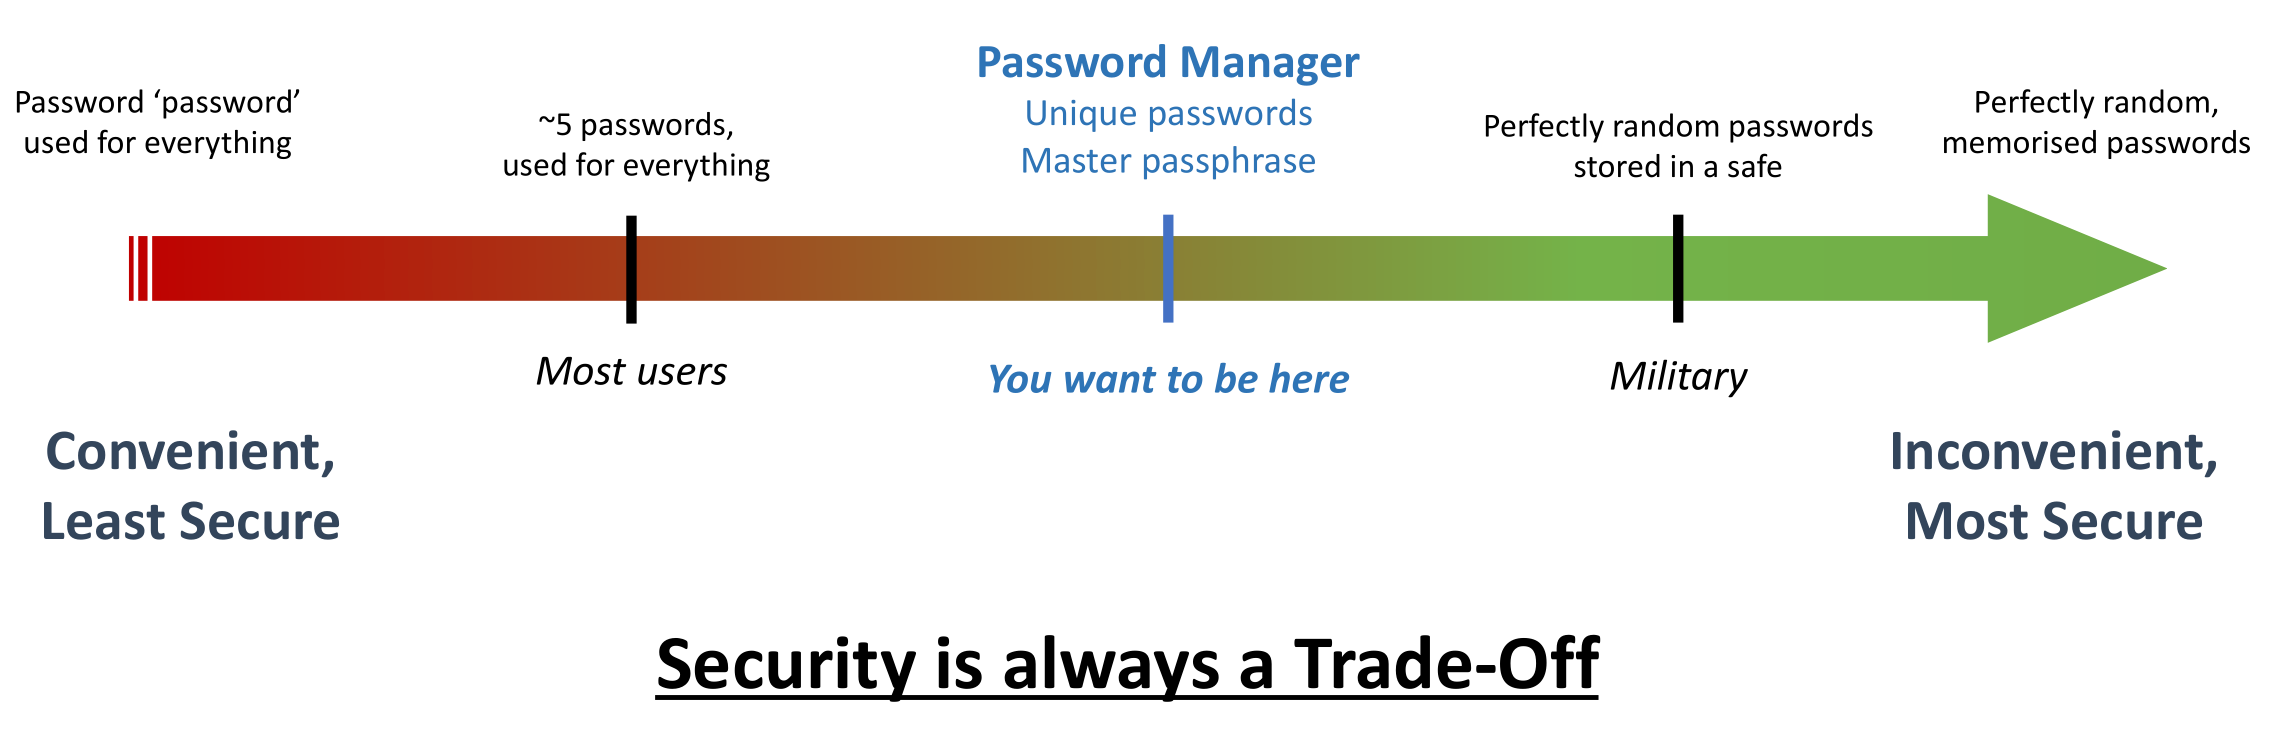 Security is always a trade-off